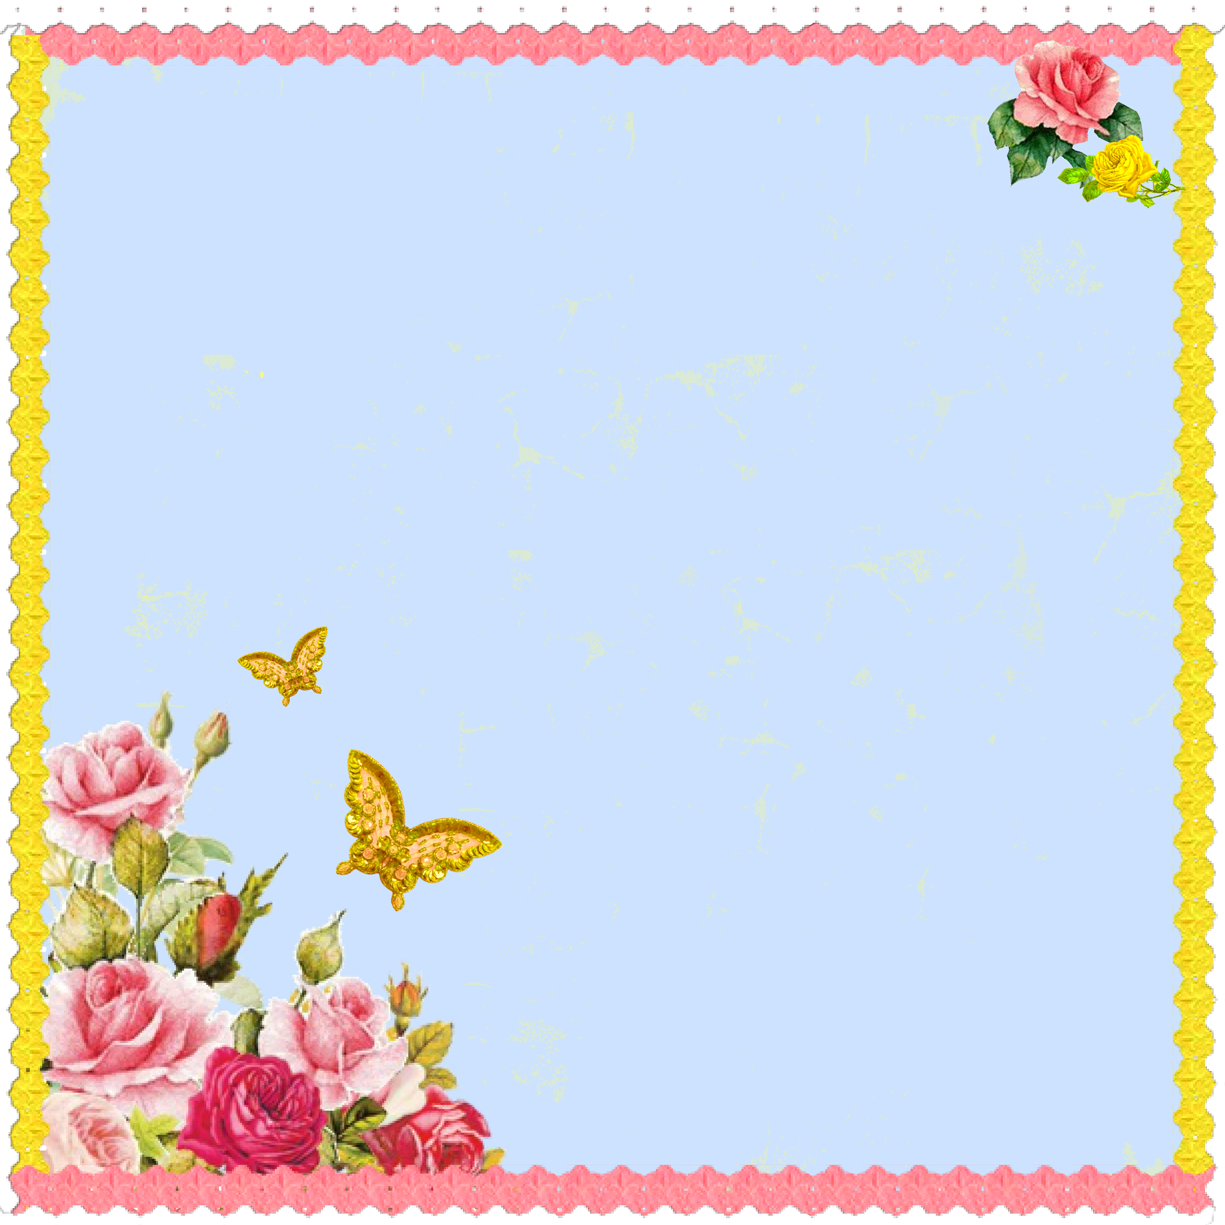 Printable Designs For Scrapbook Pages Images